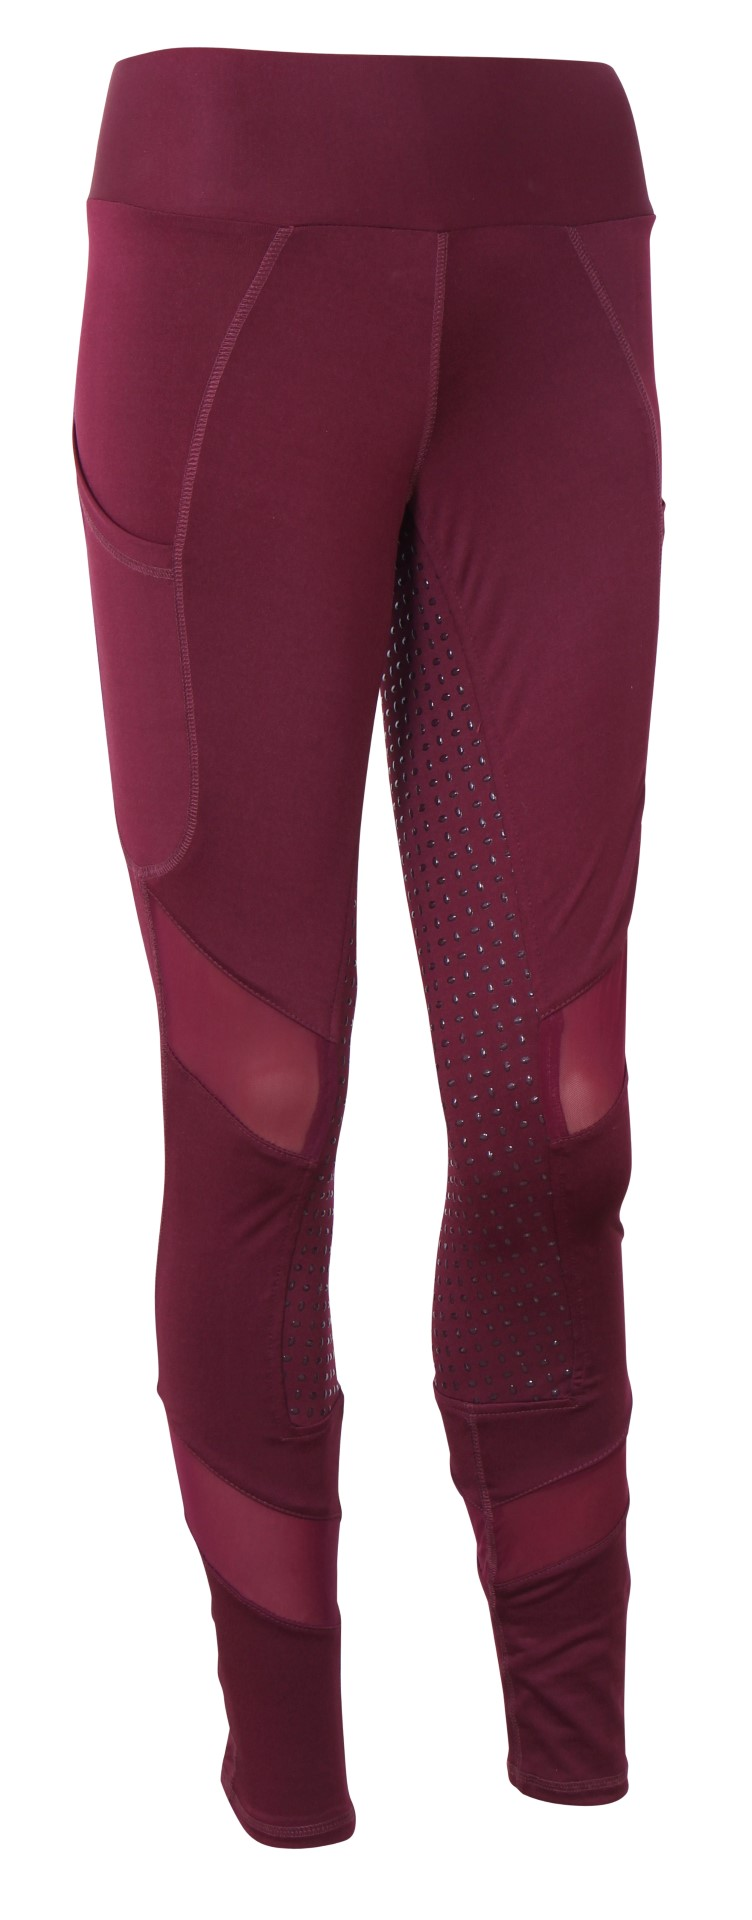 Cavallino Riding Tights BD